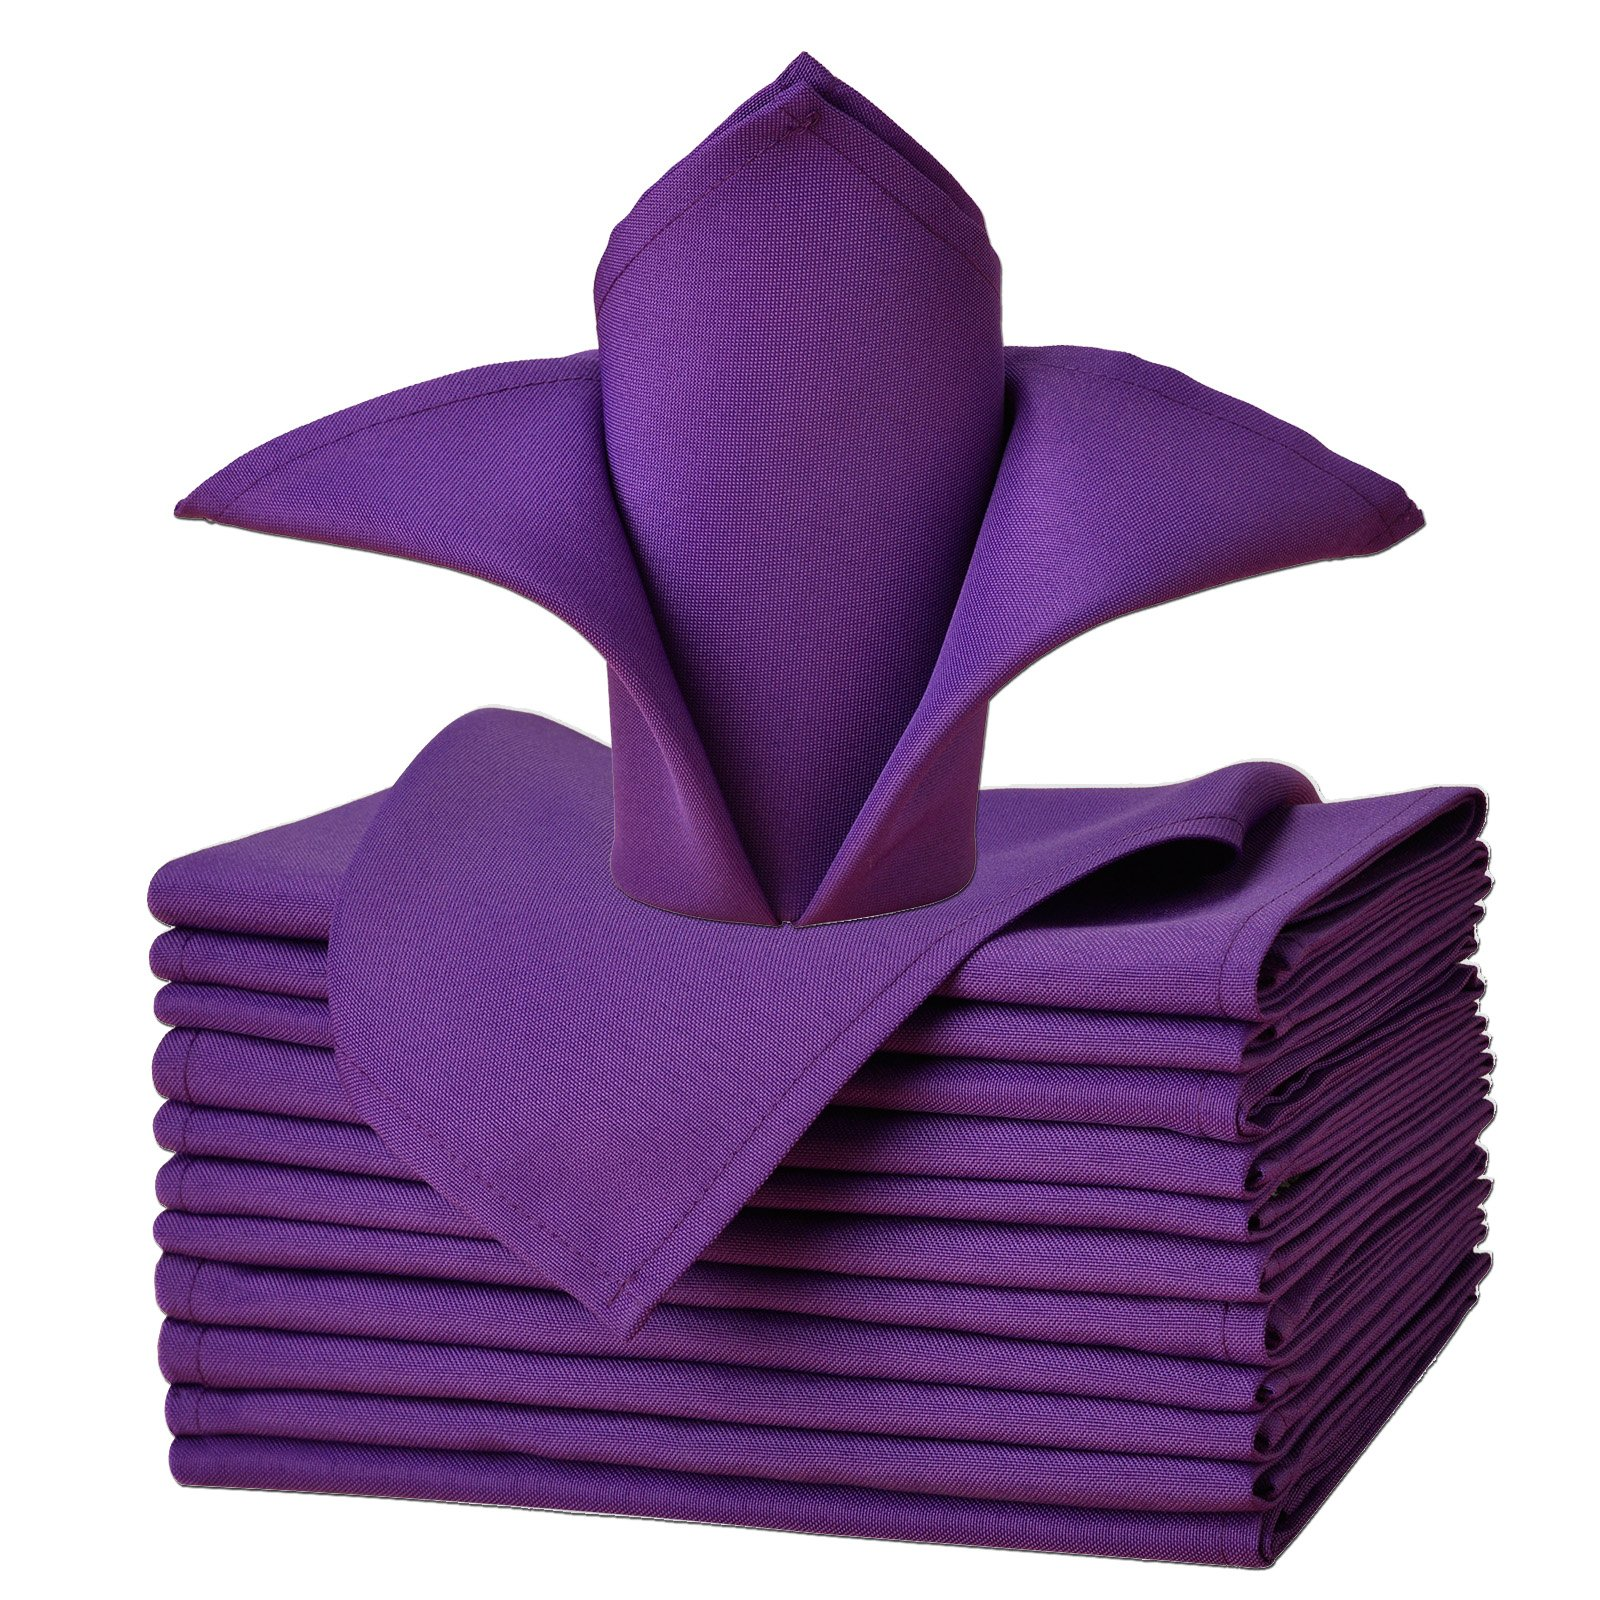 VEEYOO Oversized 17x17 Solid Polyester Cloth Napkins for Wedding Party Restaurant Dinner Washable Easy Care Set of 12, Purple